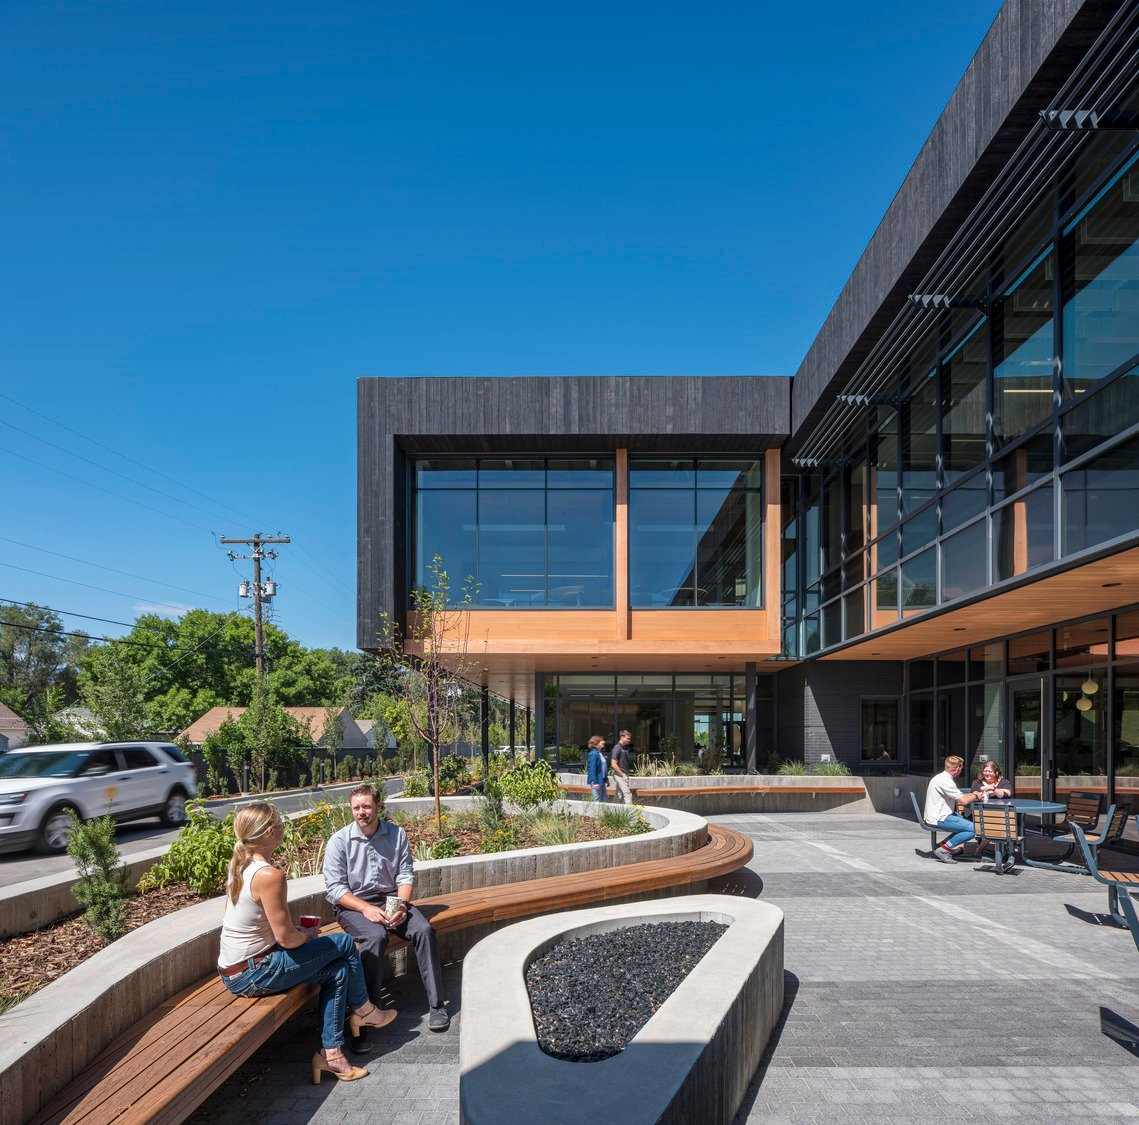 Using LEED, Living Building Challenge, and WELL, we worked with Okland to craft a healthy, inspirational workplace that connects employees with one another and their natural environment. Tim Griffith